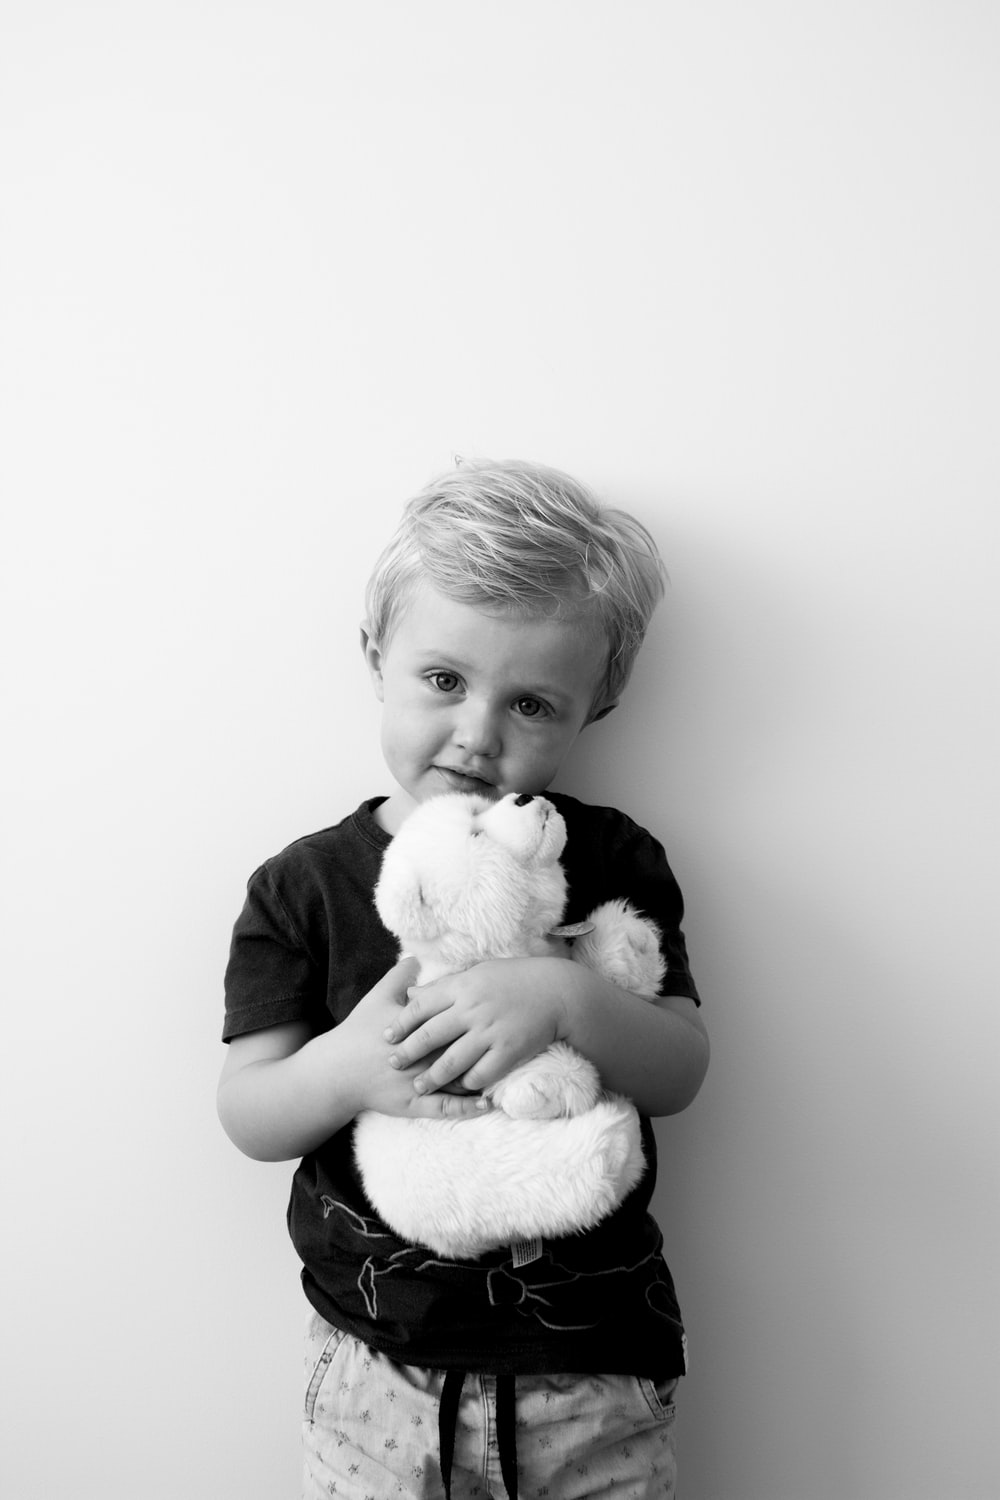 grayscale photography of boy holding bear plush toy